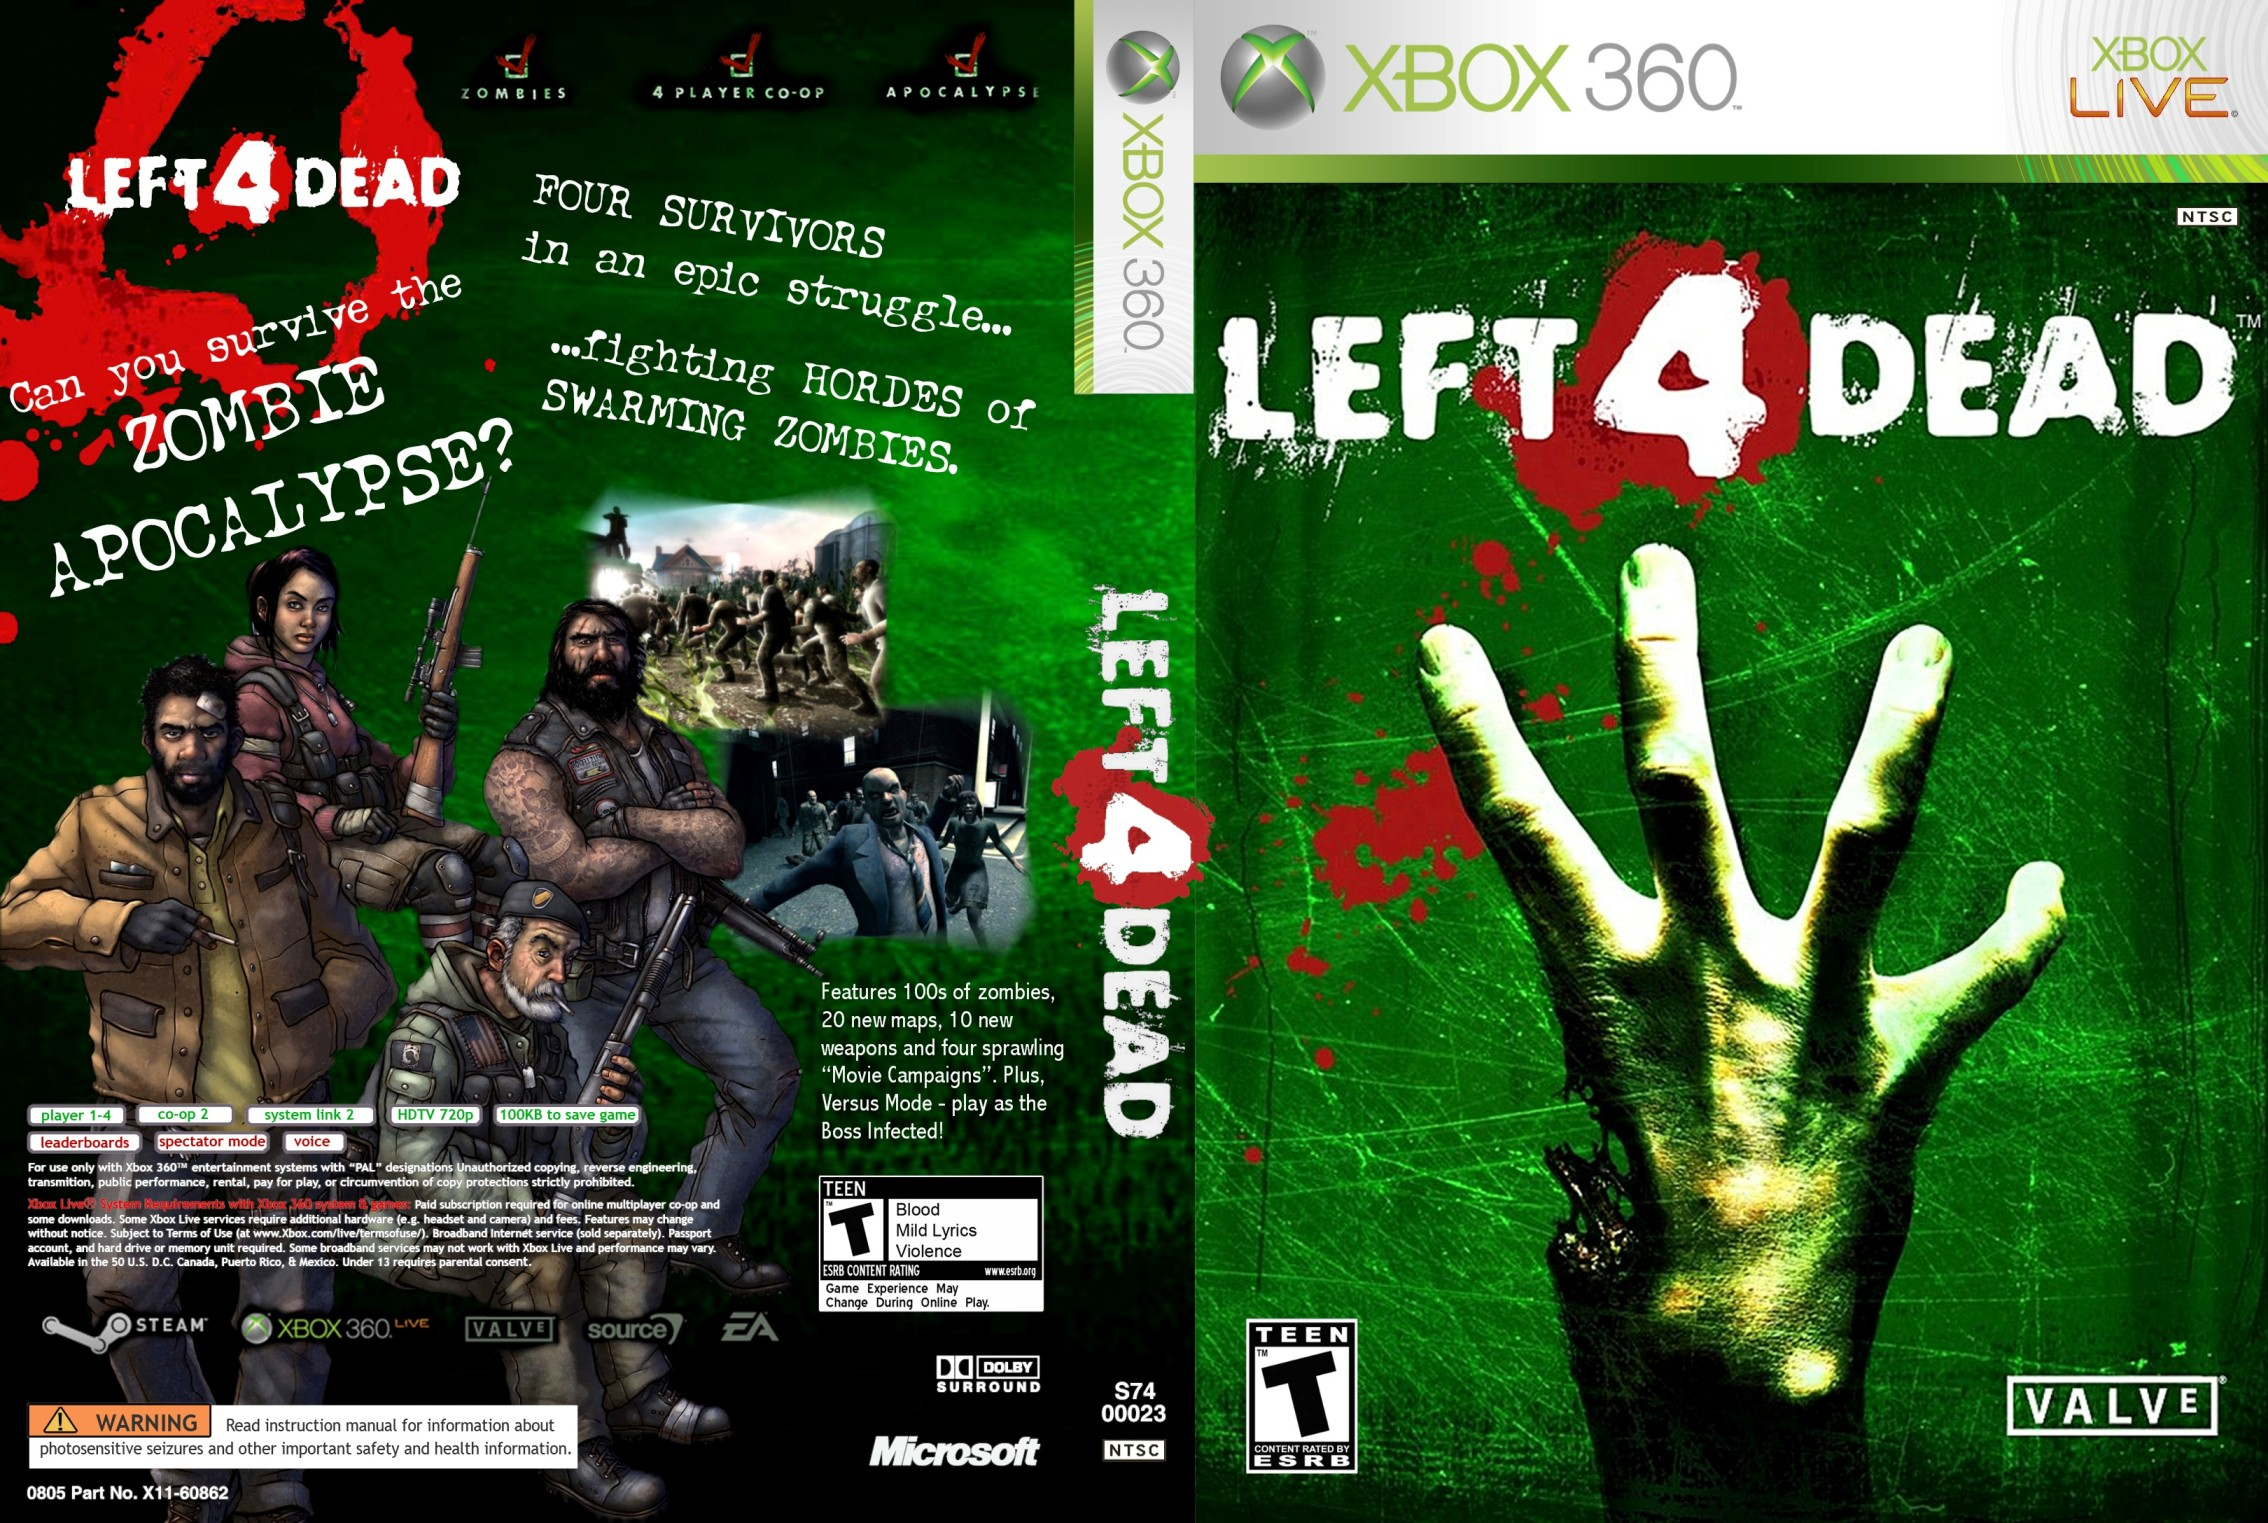 Cartoon of xbox 360 left 4 dead  pron thumbs